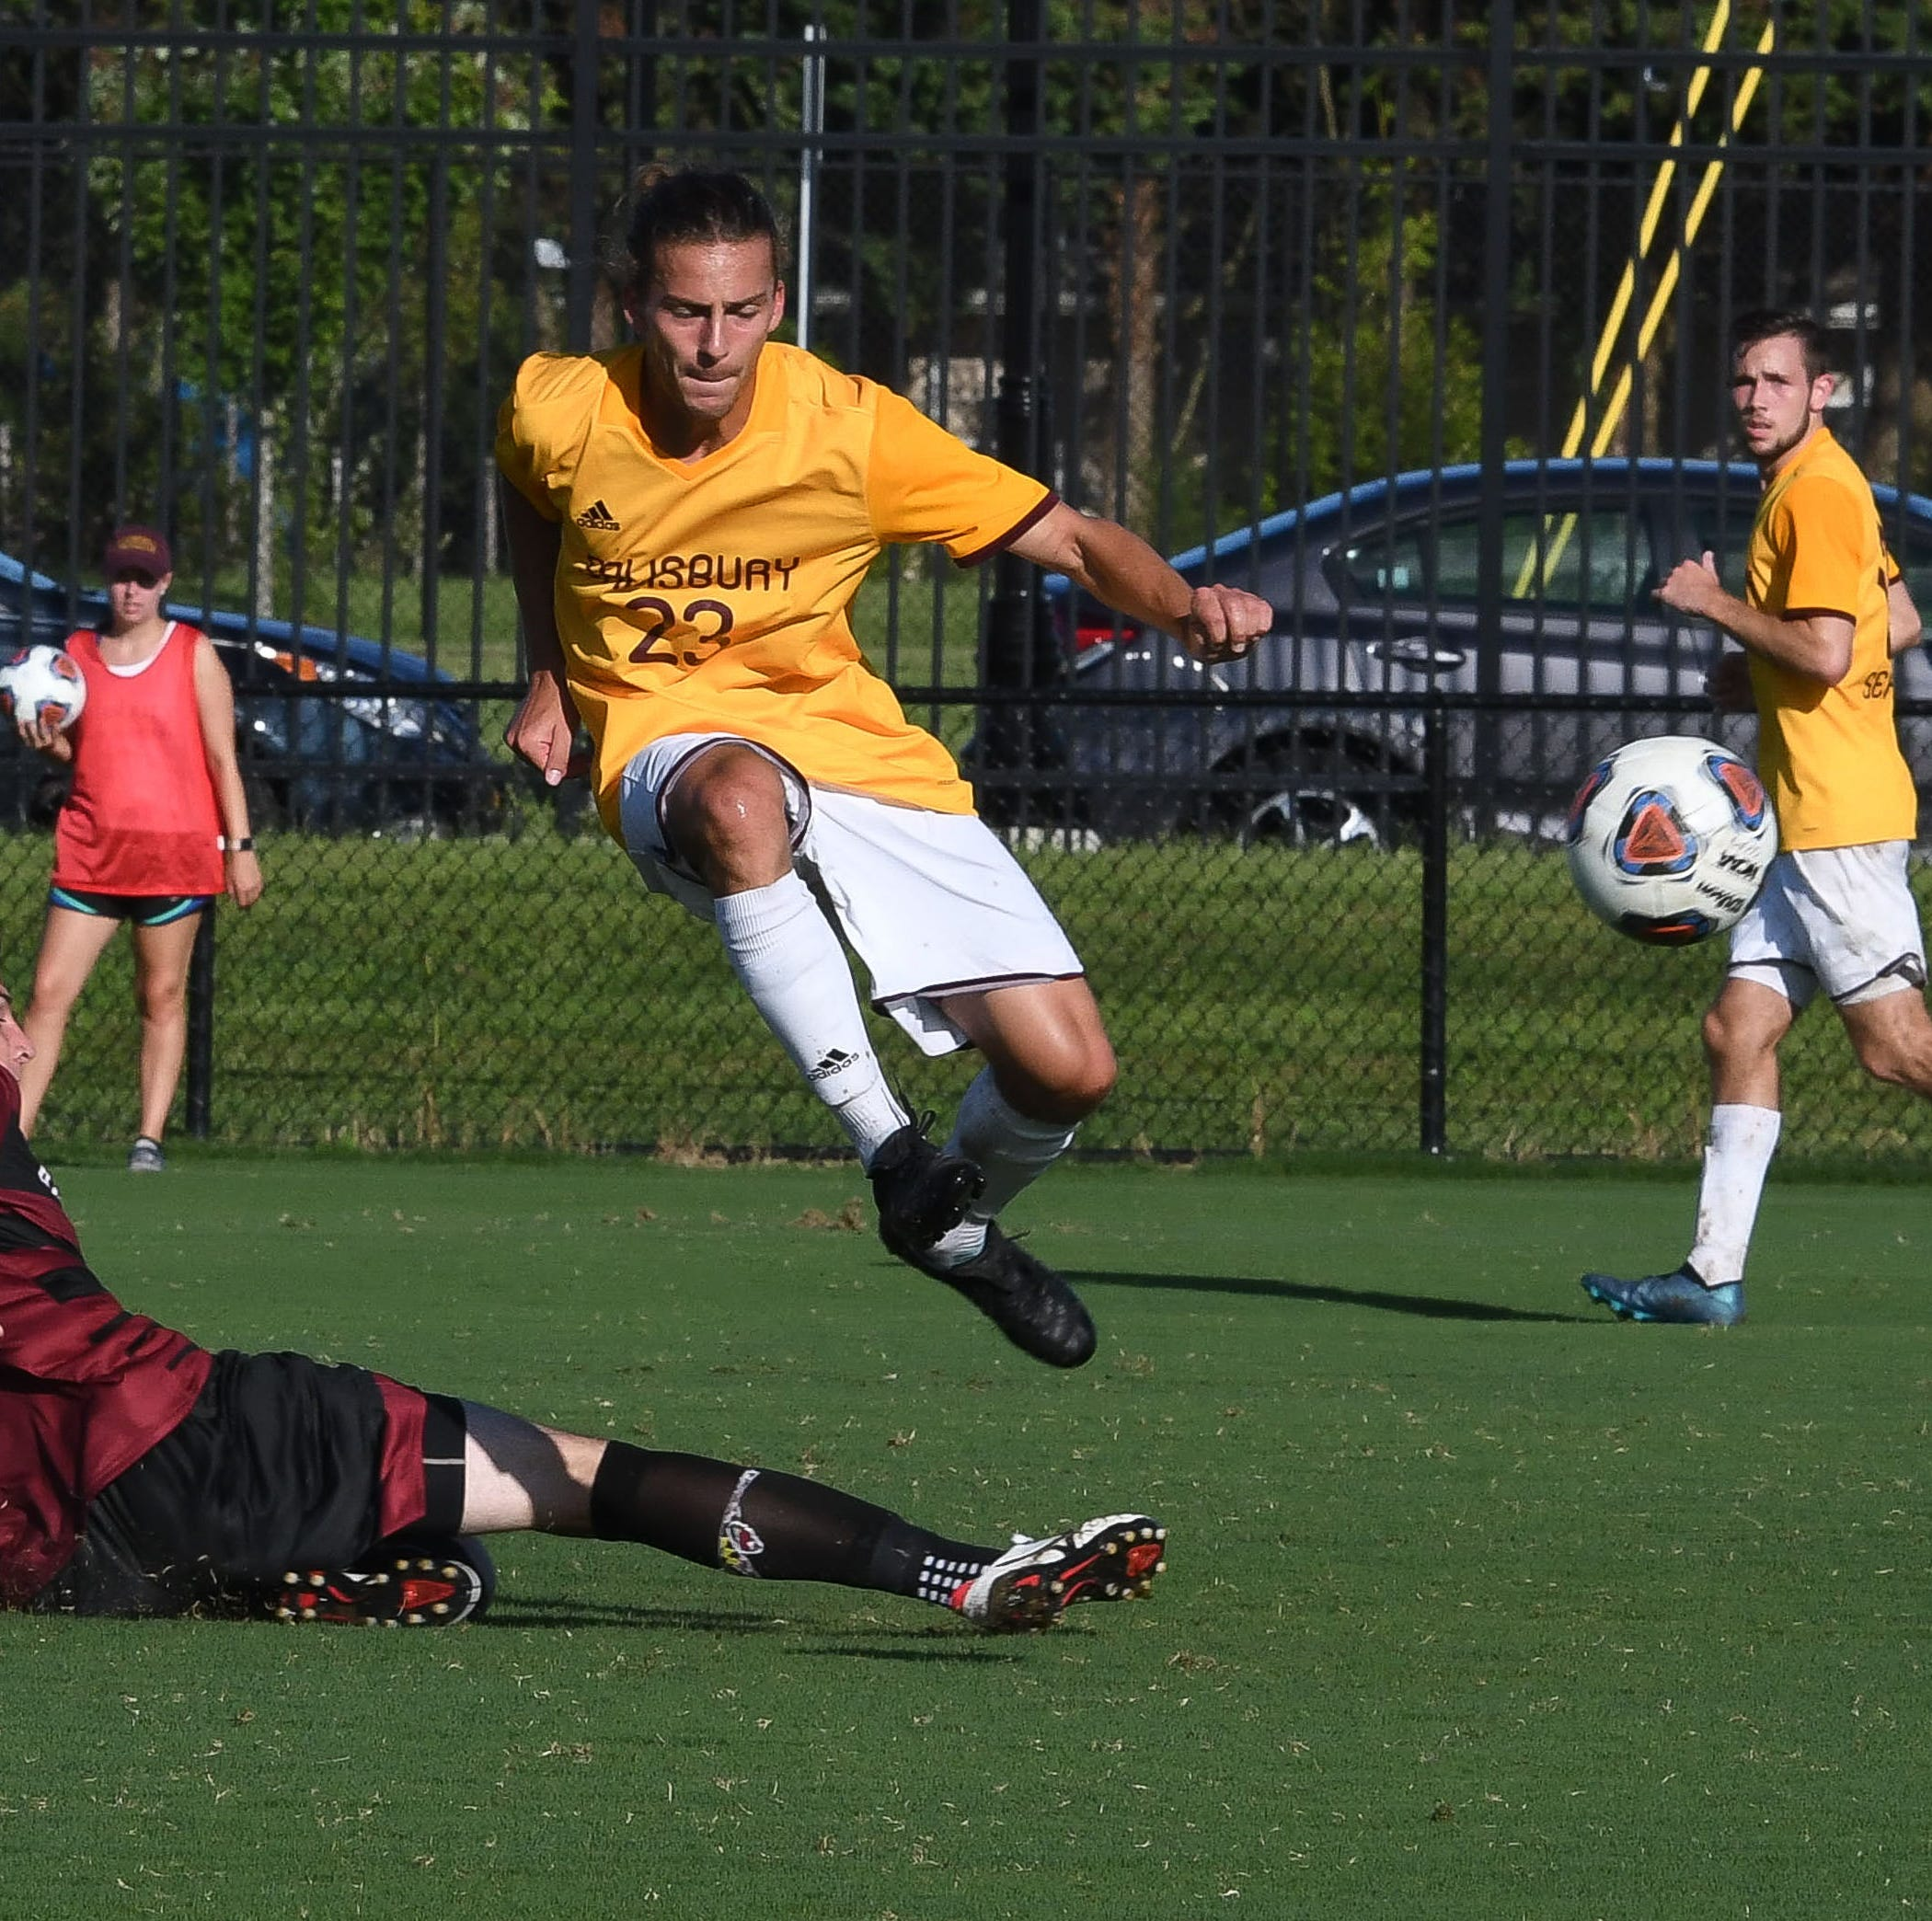 Salisbury University soccer features several local faces